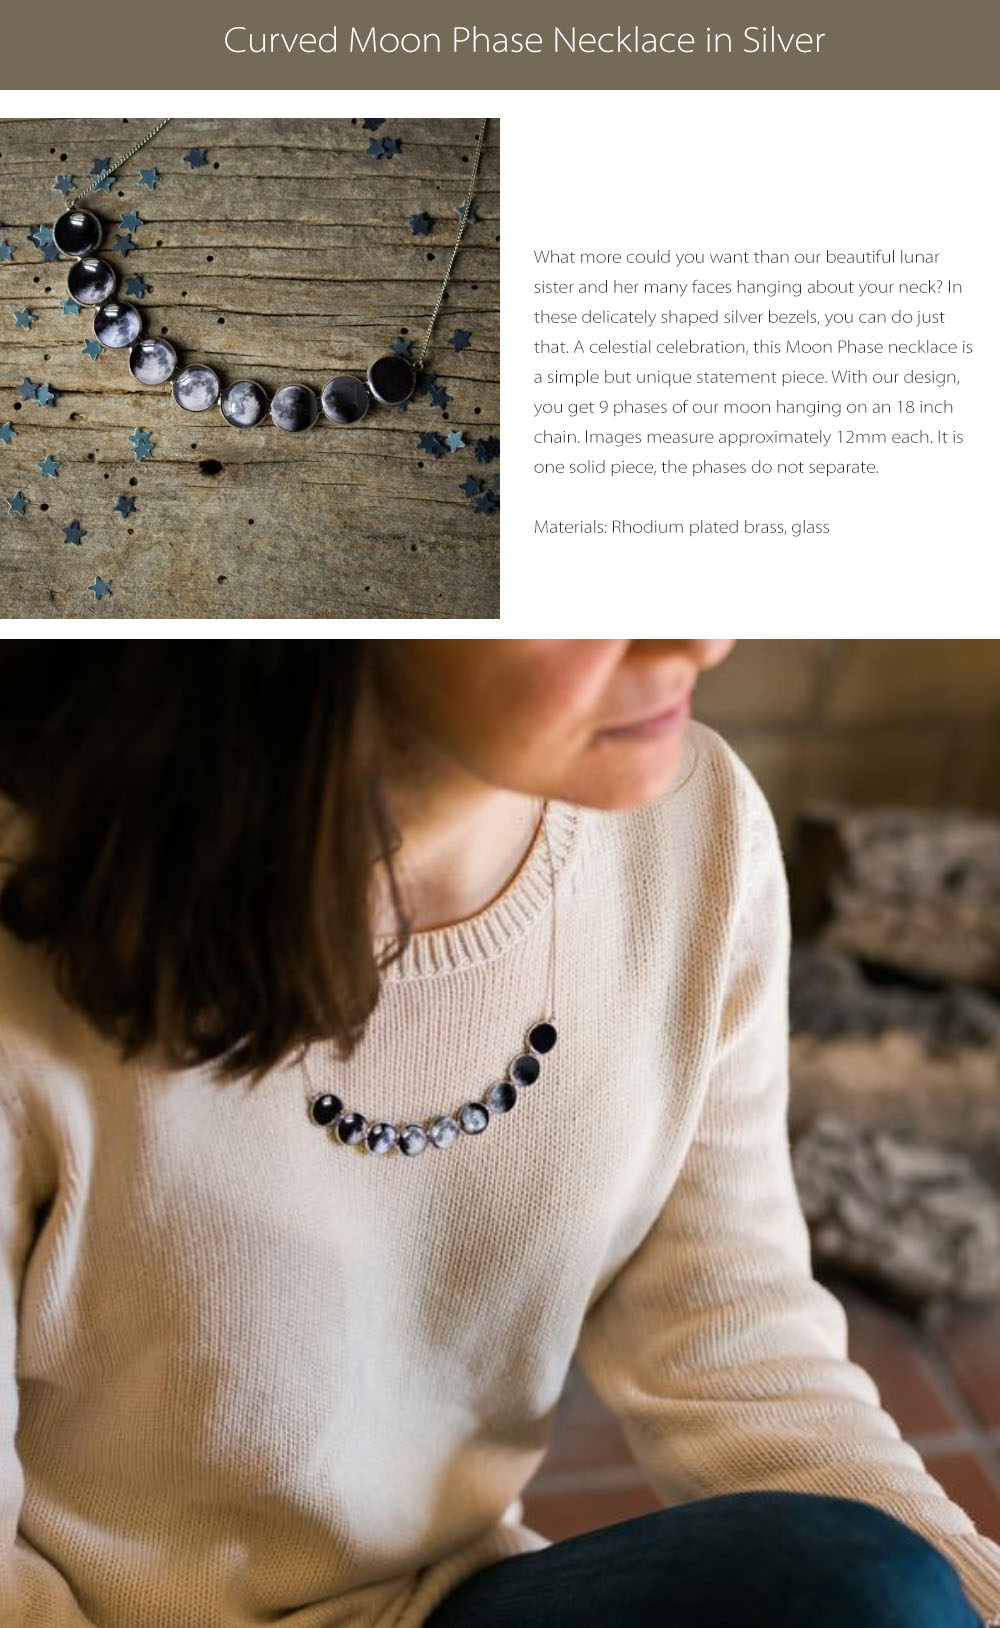 Curved Moon Phase Necklace  Silver Collection